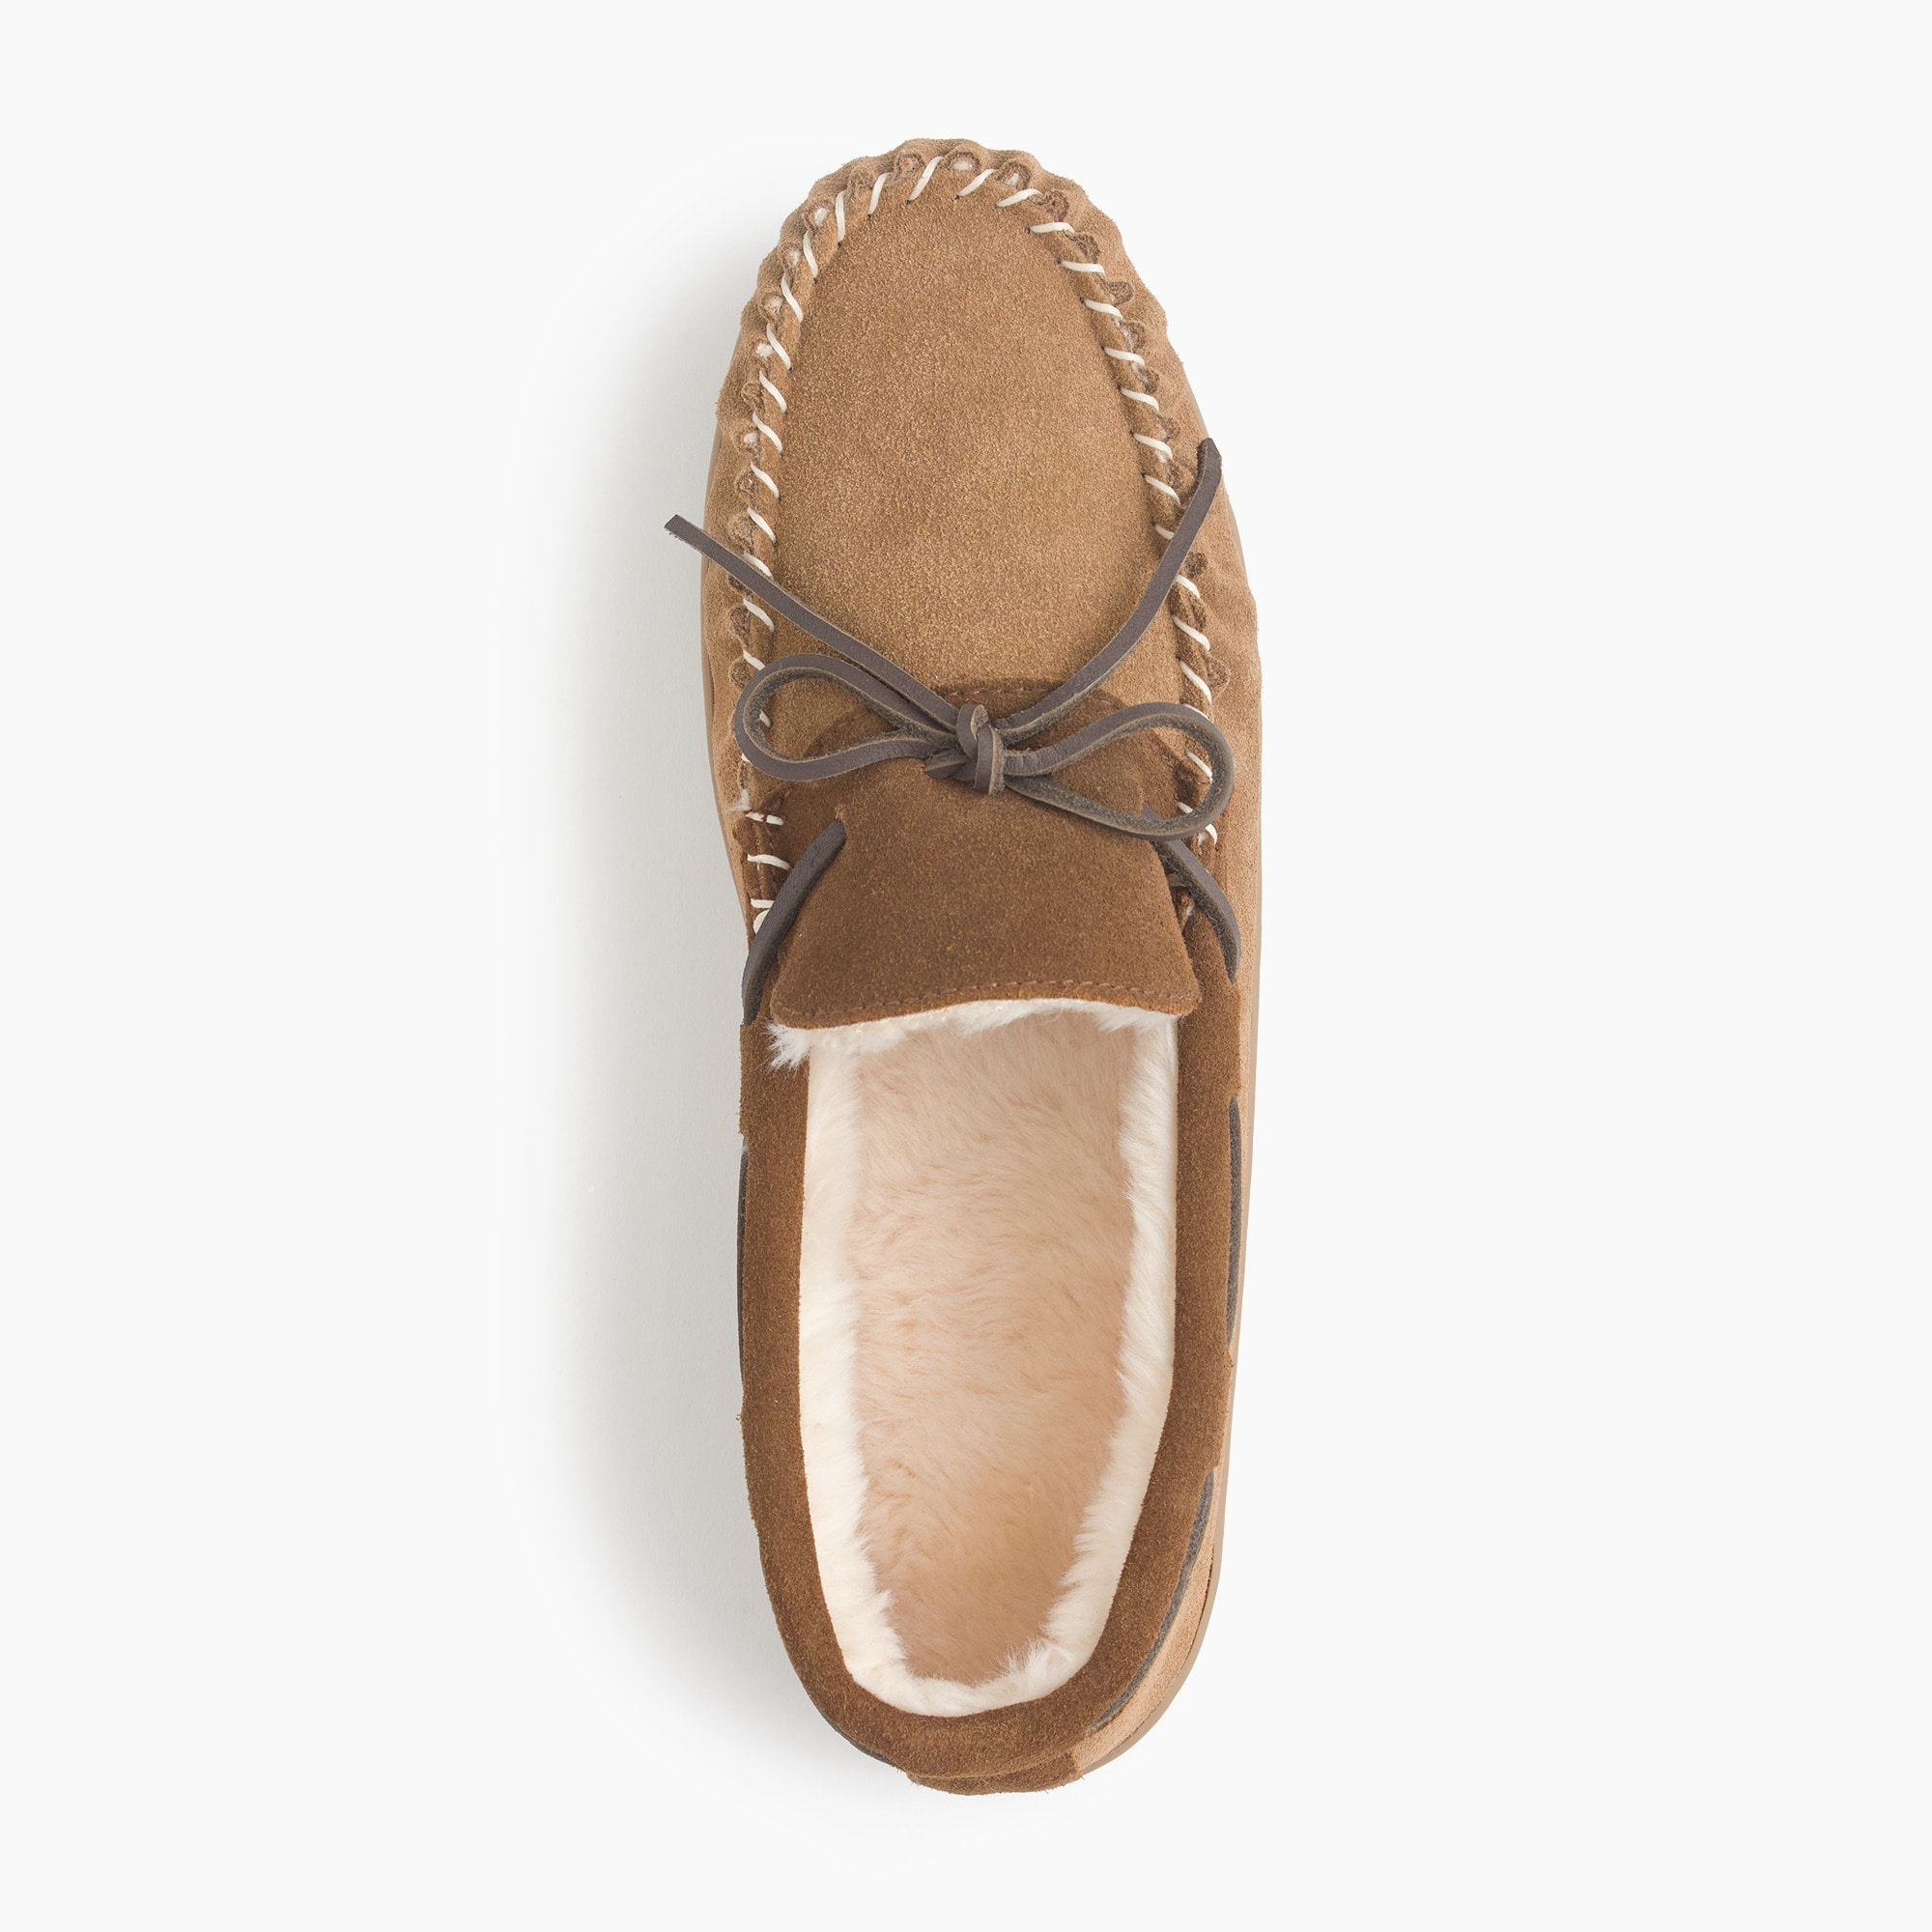 Image 2 for Classic suede moccasin slippers